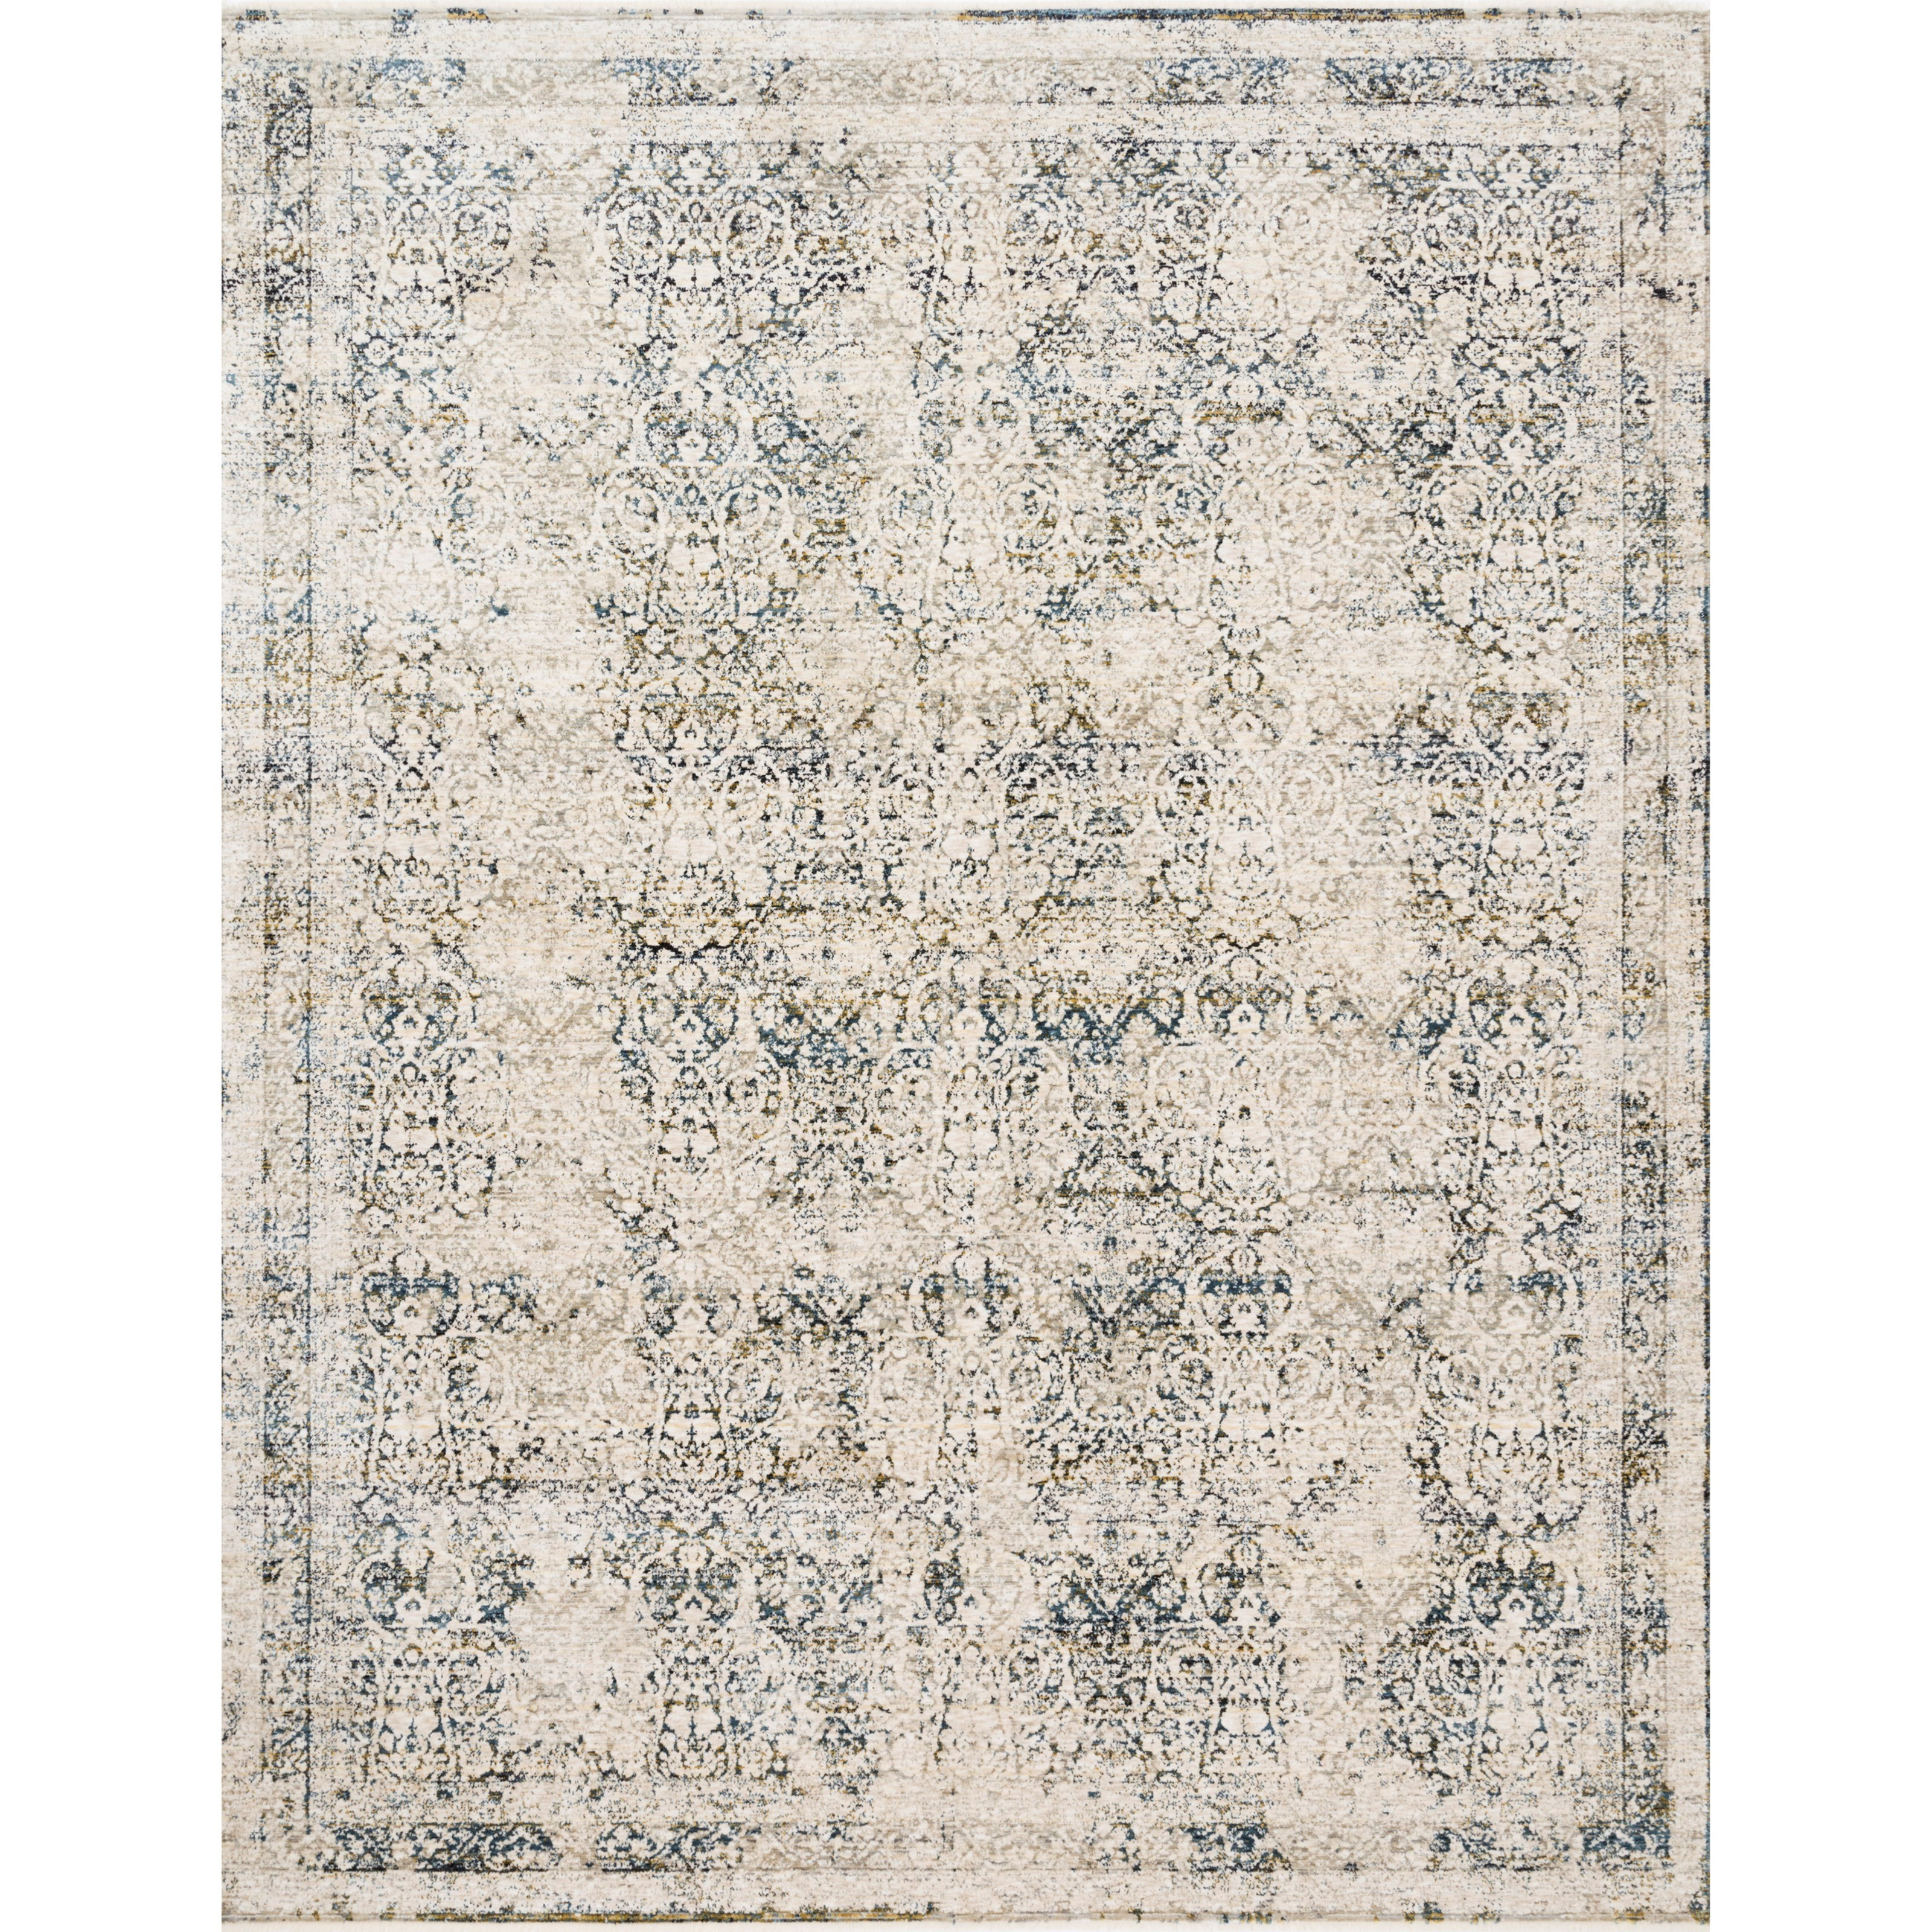 """Theia 2'10"""" x 12'6"""" Natural / Ocean Rug by Loloi Rugs at Virginia Furniture Market"""